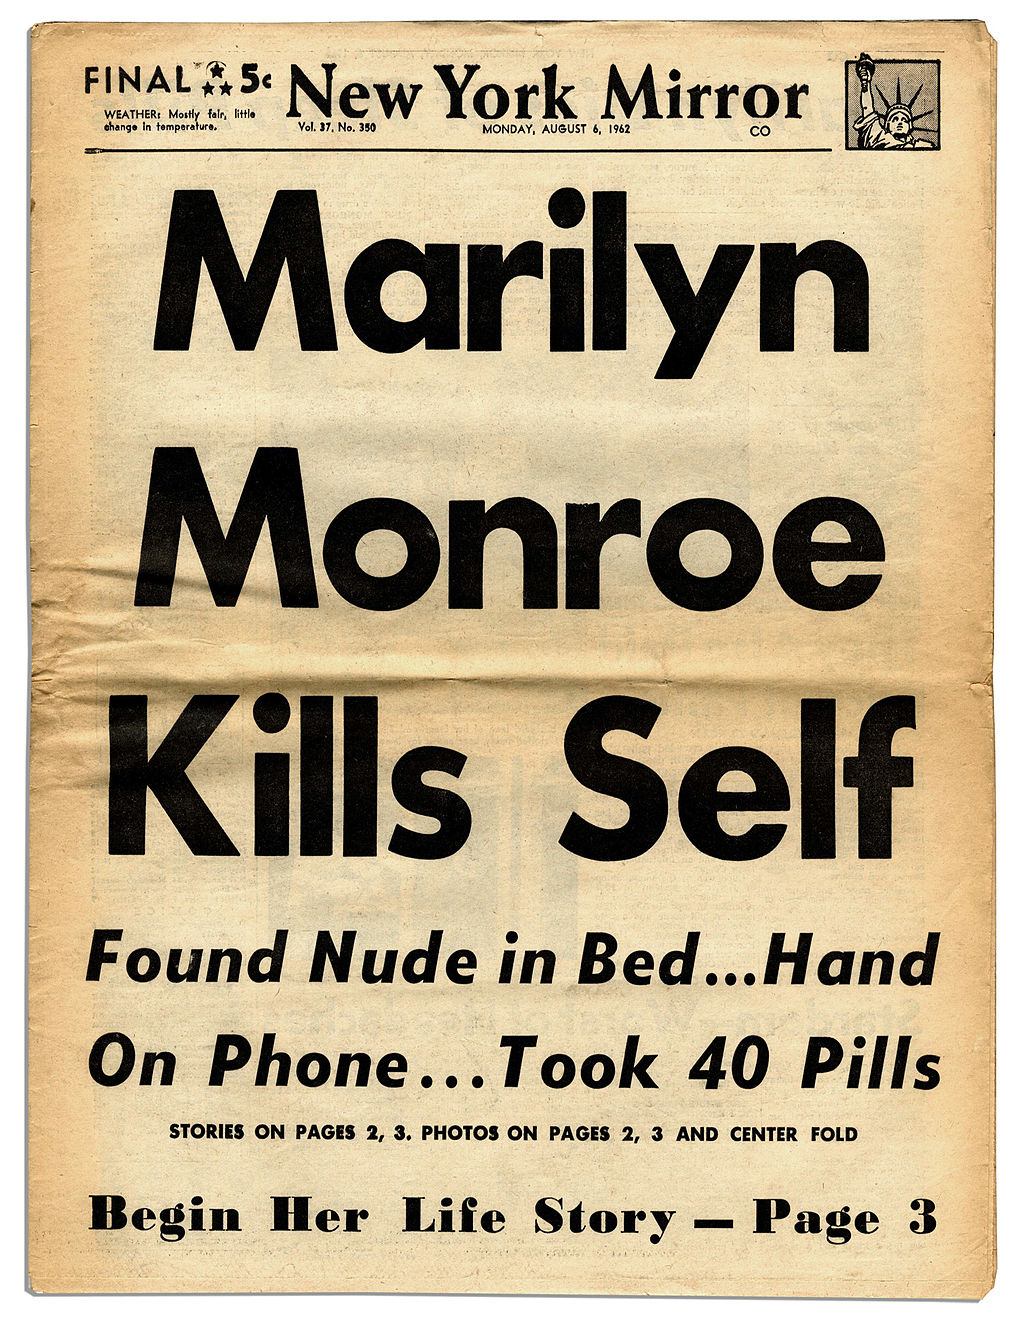 New_York_Mirror_Front_Page_of_August_6,_1962.jpeg